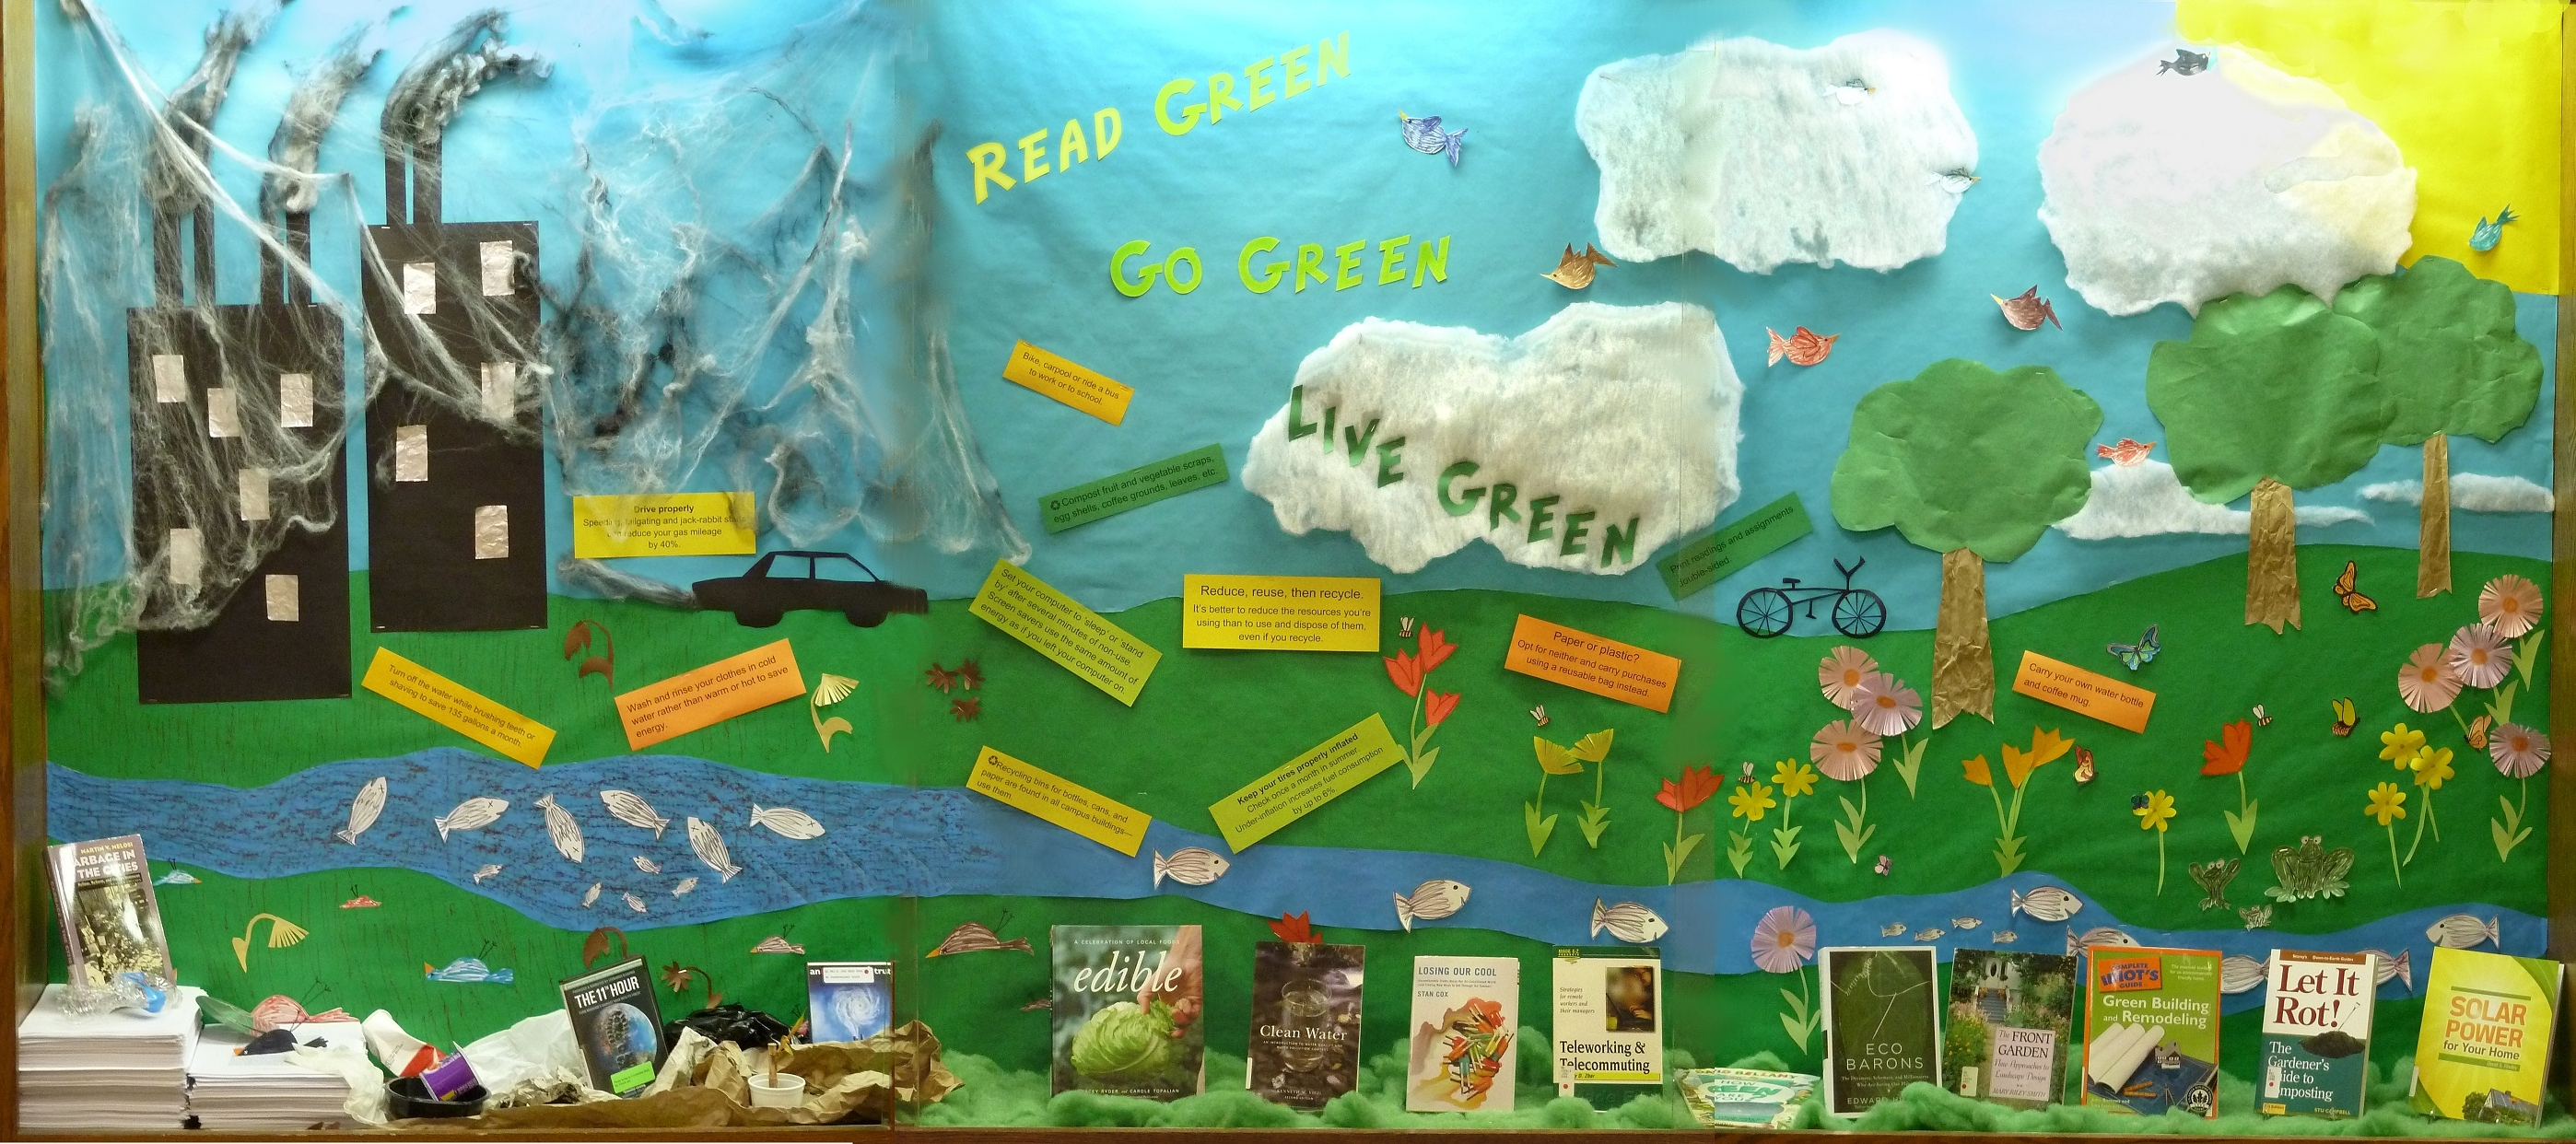 Read Green Go Green Live Green Reynolds Library Blog